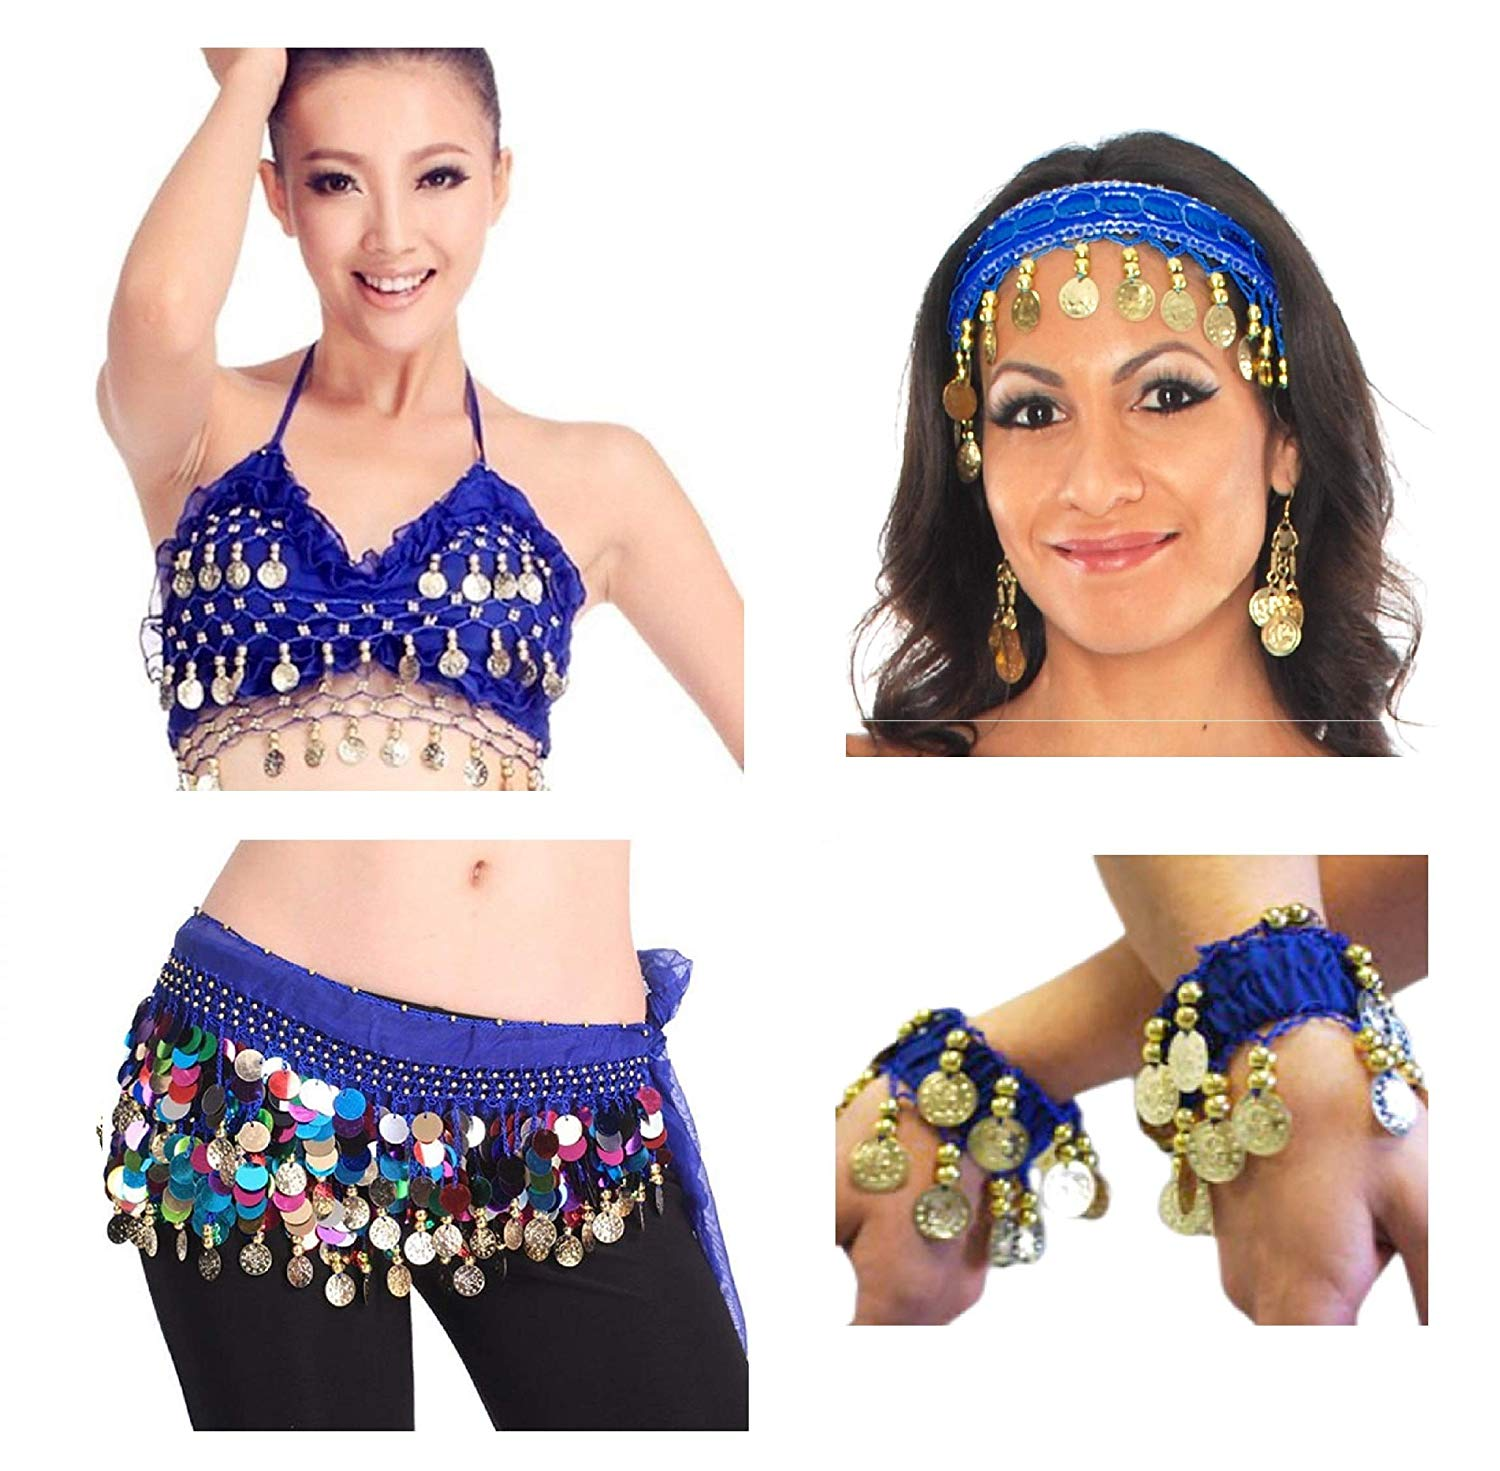 Vritraz Women\'s Chiffon Belly Dance Hip Waistband 1 Scarf, 1 Top, 1  Headband, 1 Handcuff with Ringy Golden Coins (Pack of 4).